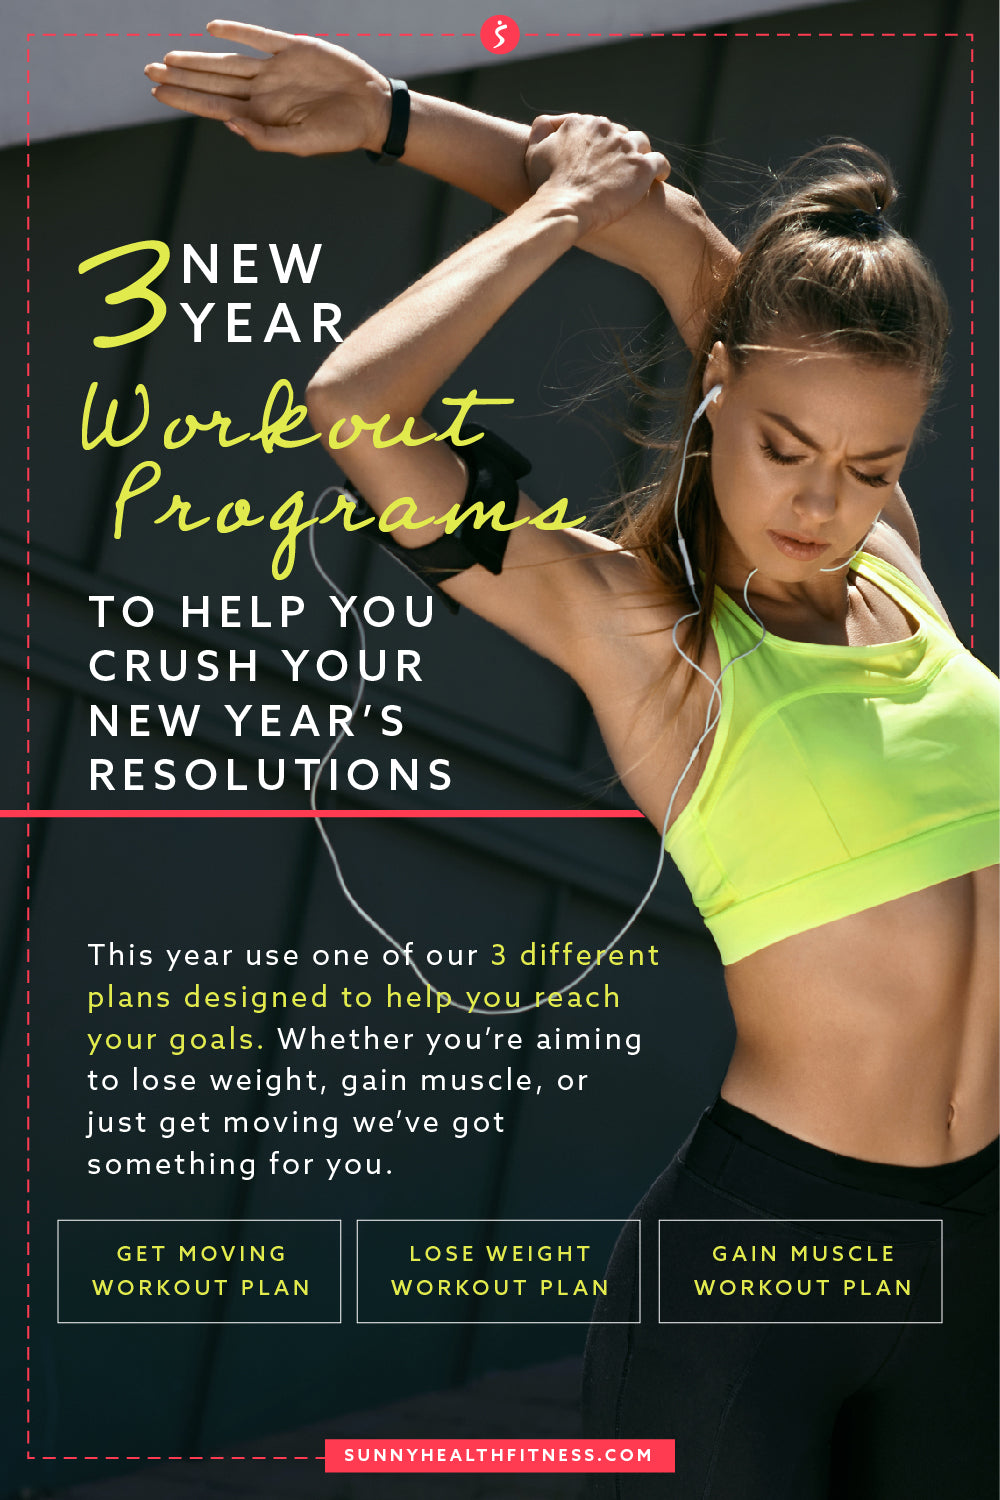 3 New Year Workout Programs Infographic